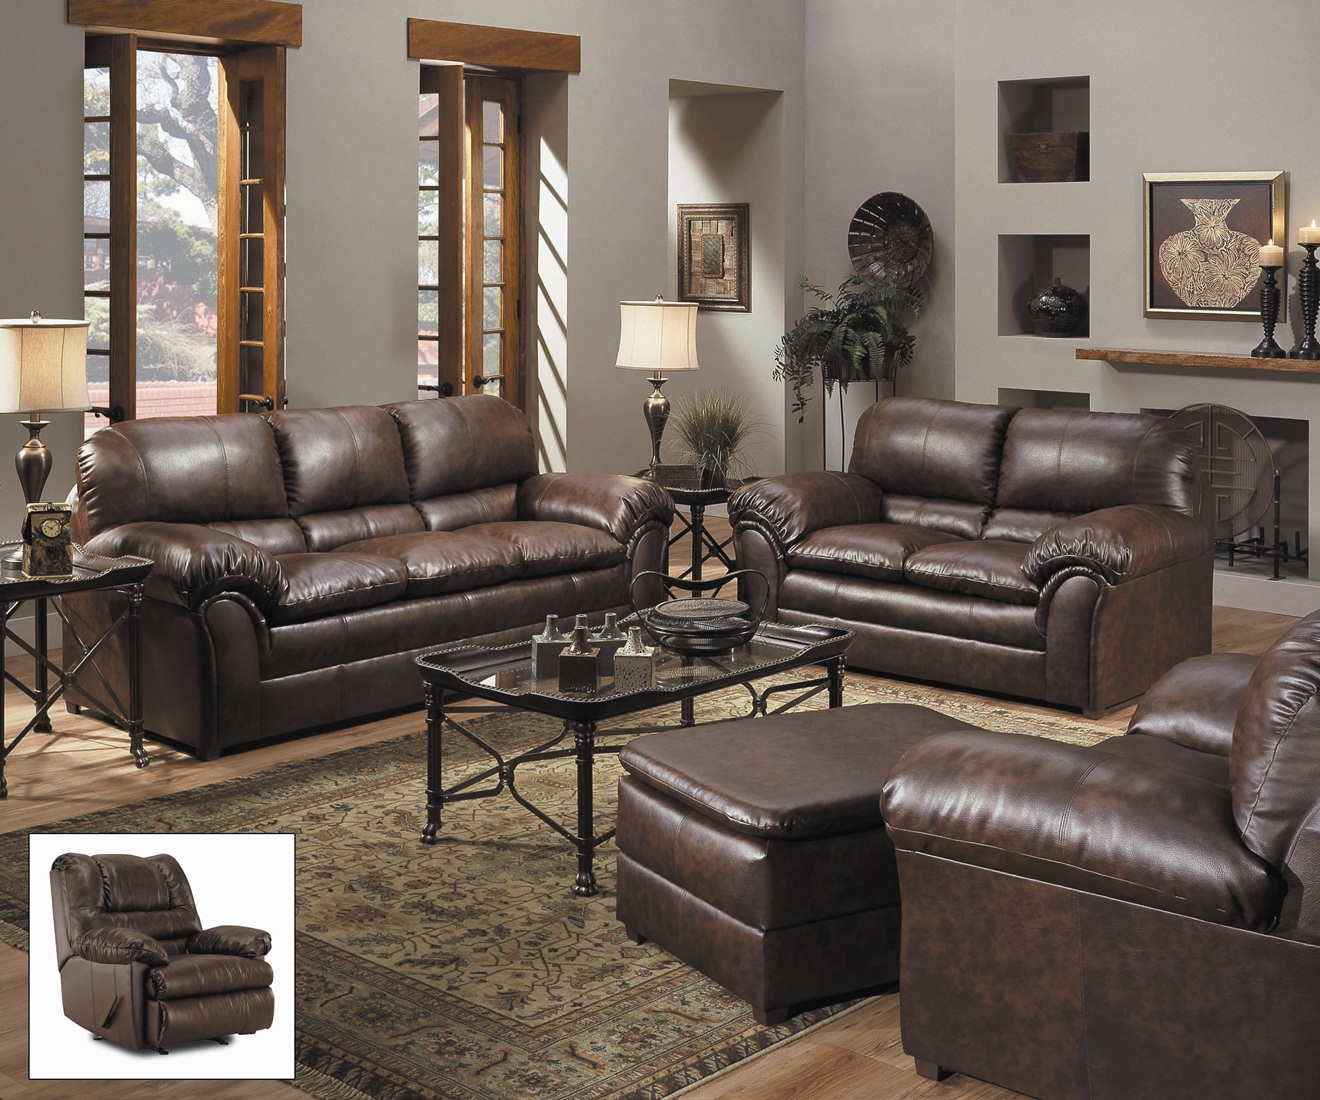 Geneva classic brown bonded leather living room furniture for Classic living room furniture